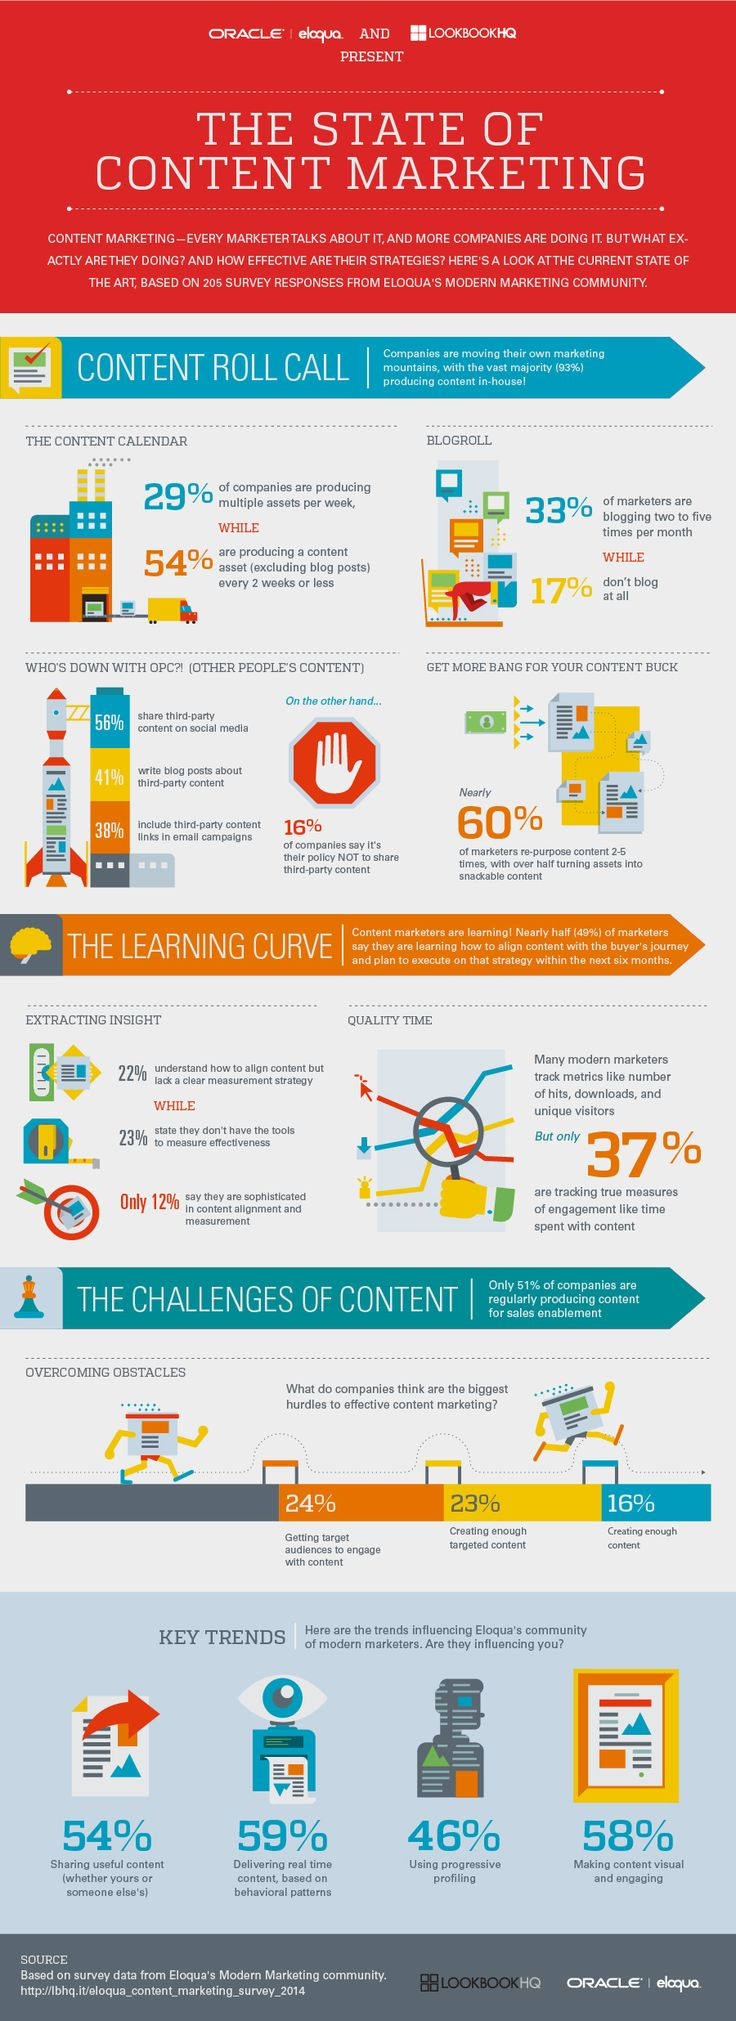 The State of Content Marketing 2014 #infographic